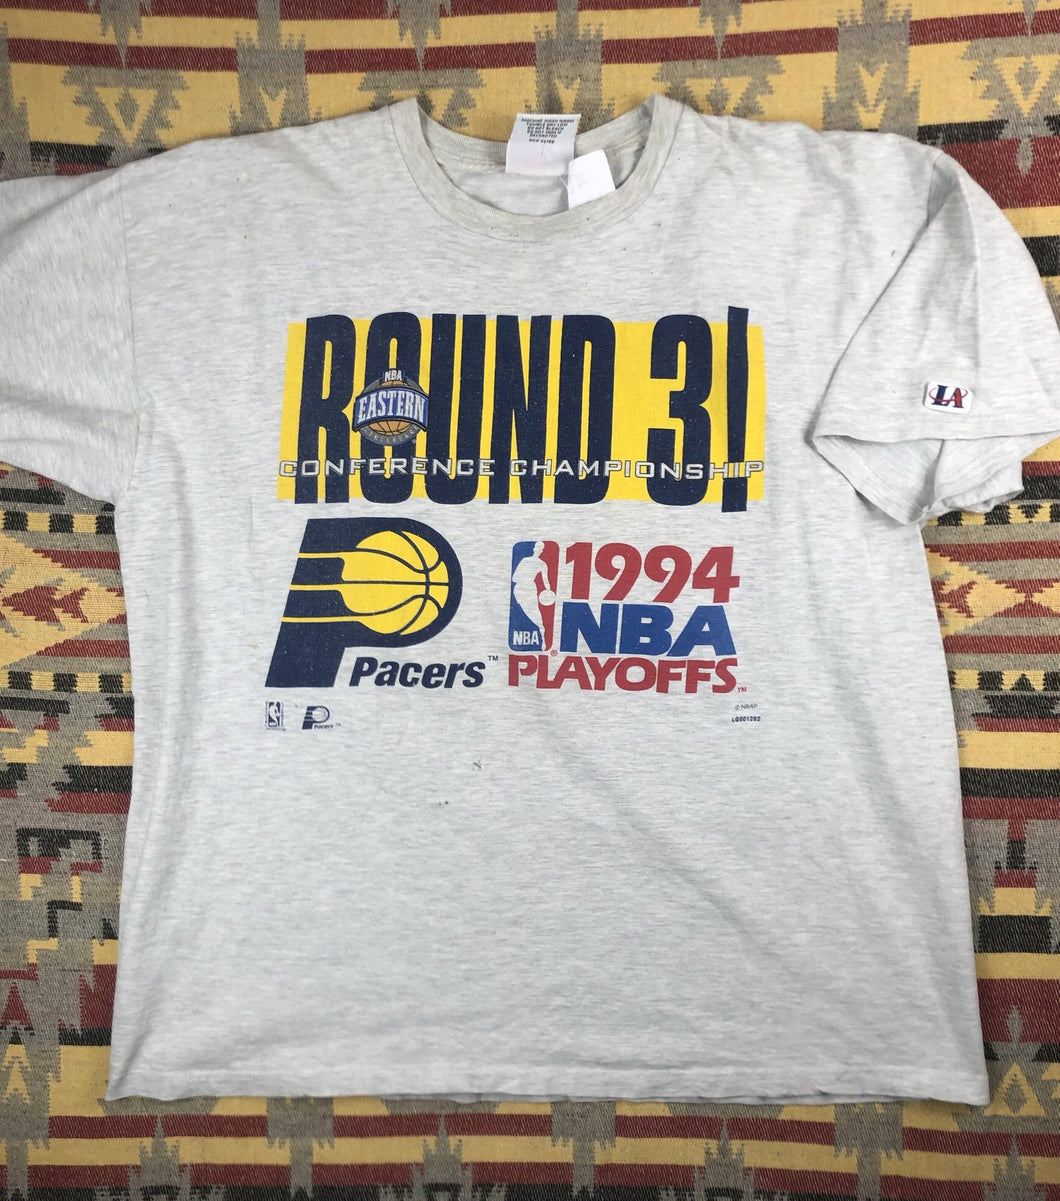 Vintage 1994 Indians Pacers NBA Playoffs shirt size XL